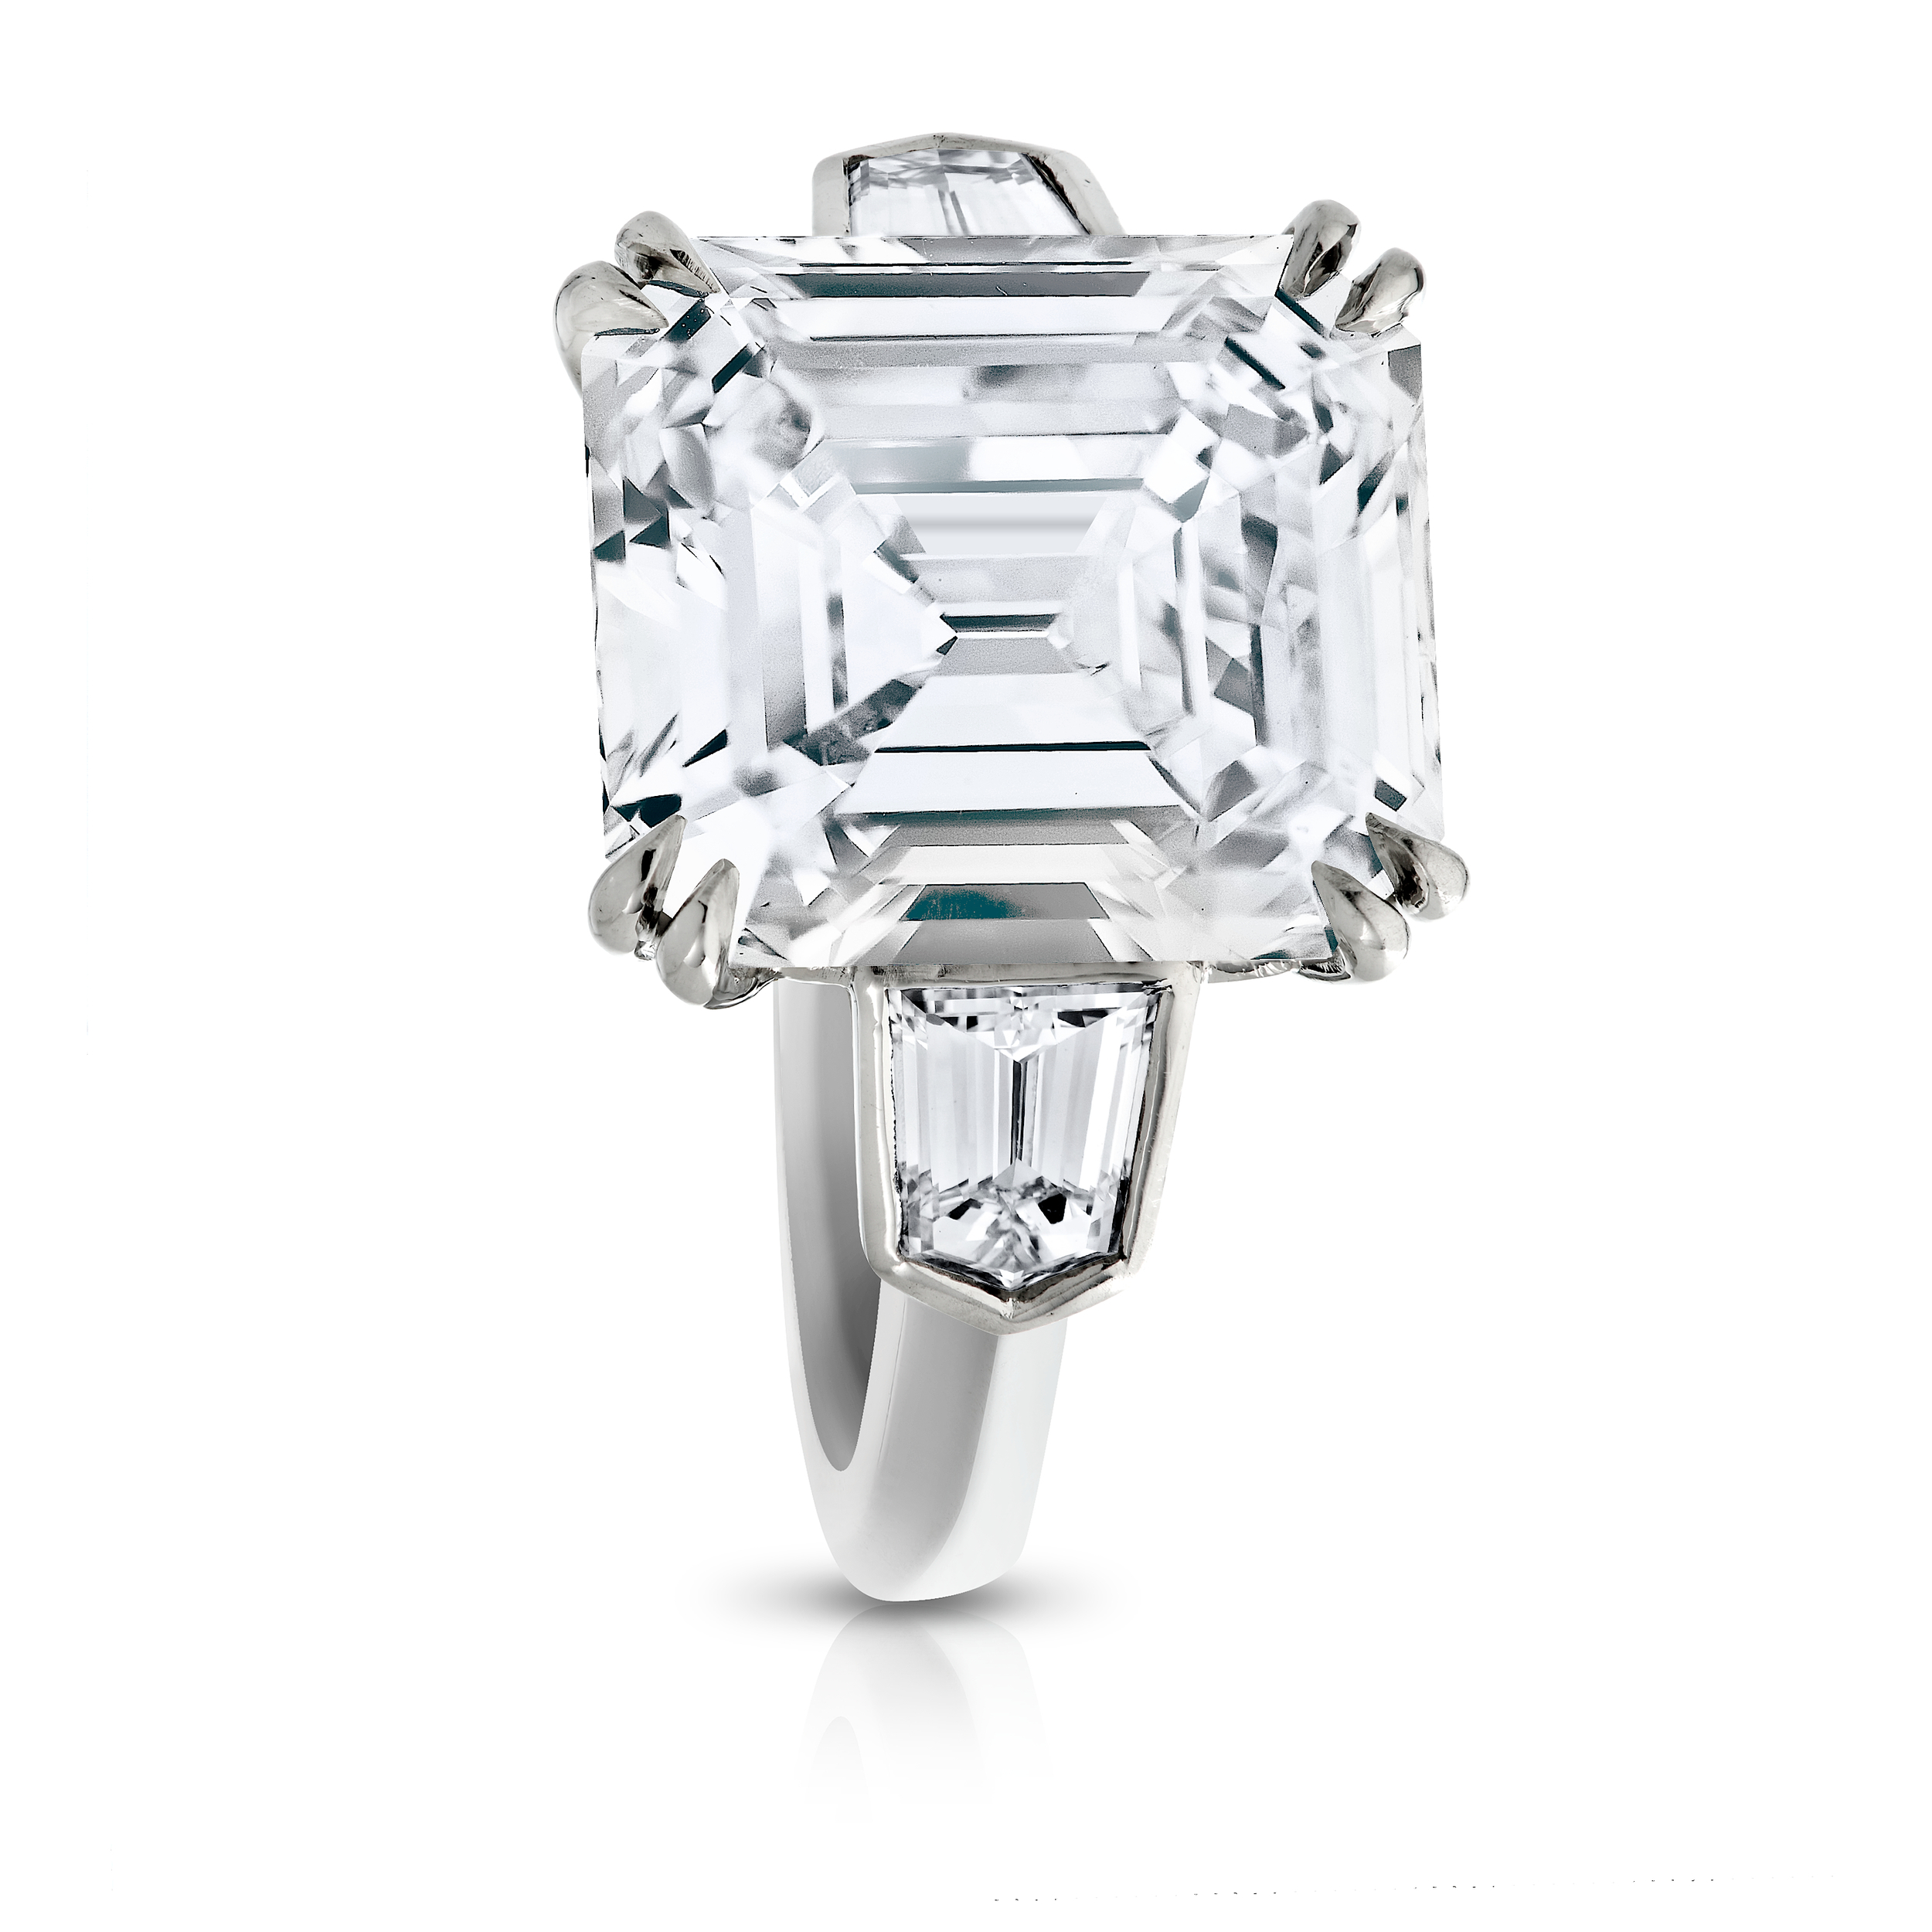 EMERALD CUT CENTER DIAMOND WITH SPLIT EAGLE CLAW PRONGS AND BEZEL SET BULLET CUT SIDE DIAMONDS CRAFTED IN PLATINUM, 7.11 CTW